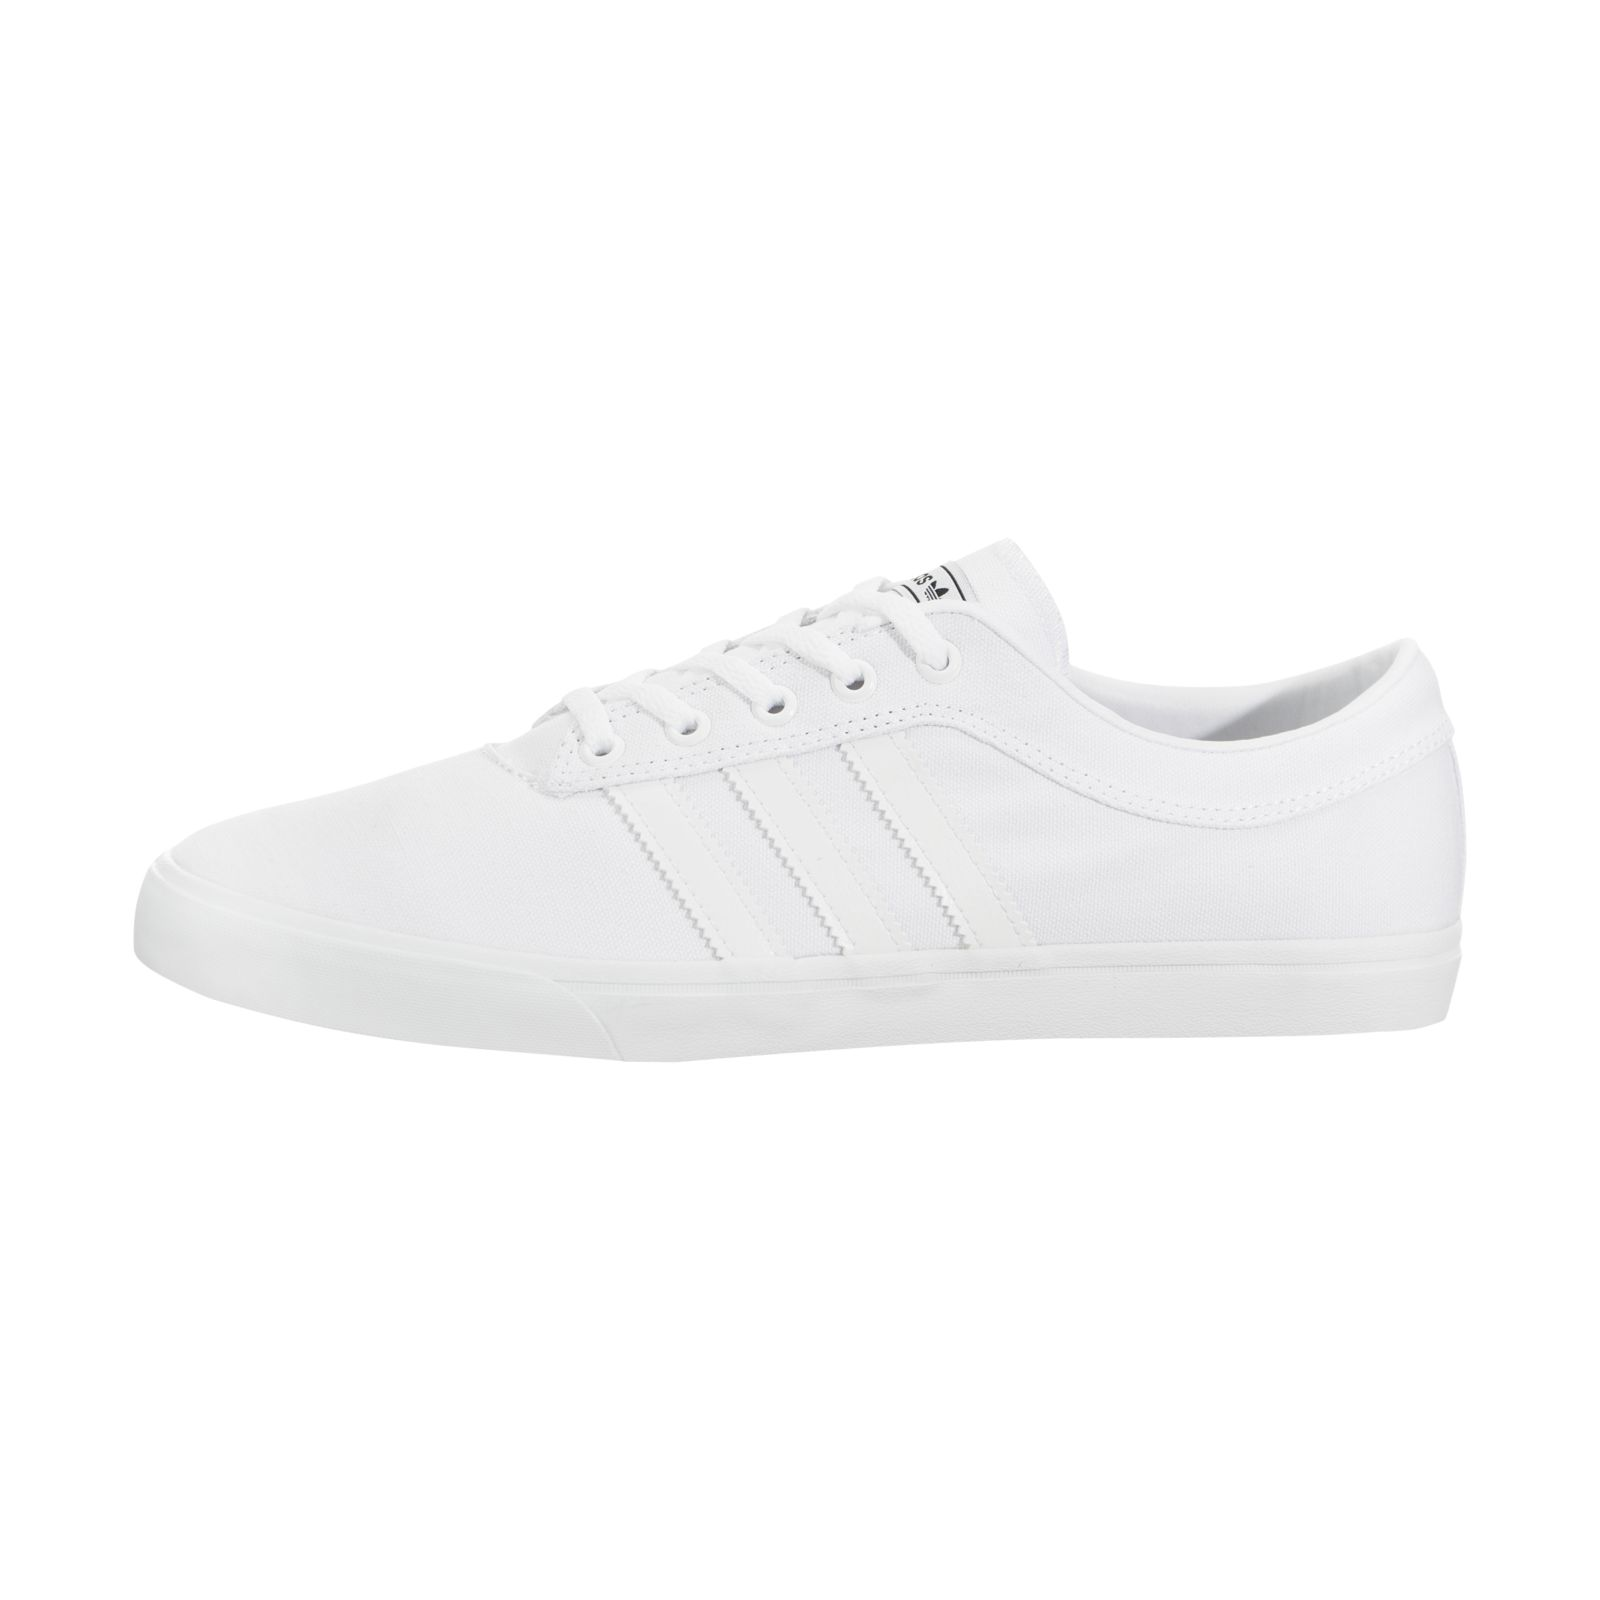 Details about Adidas Originals Sellwood (BB8691) Athletic Sneakers Skateboard Shoes White